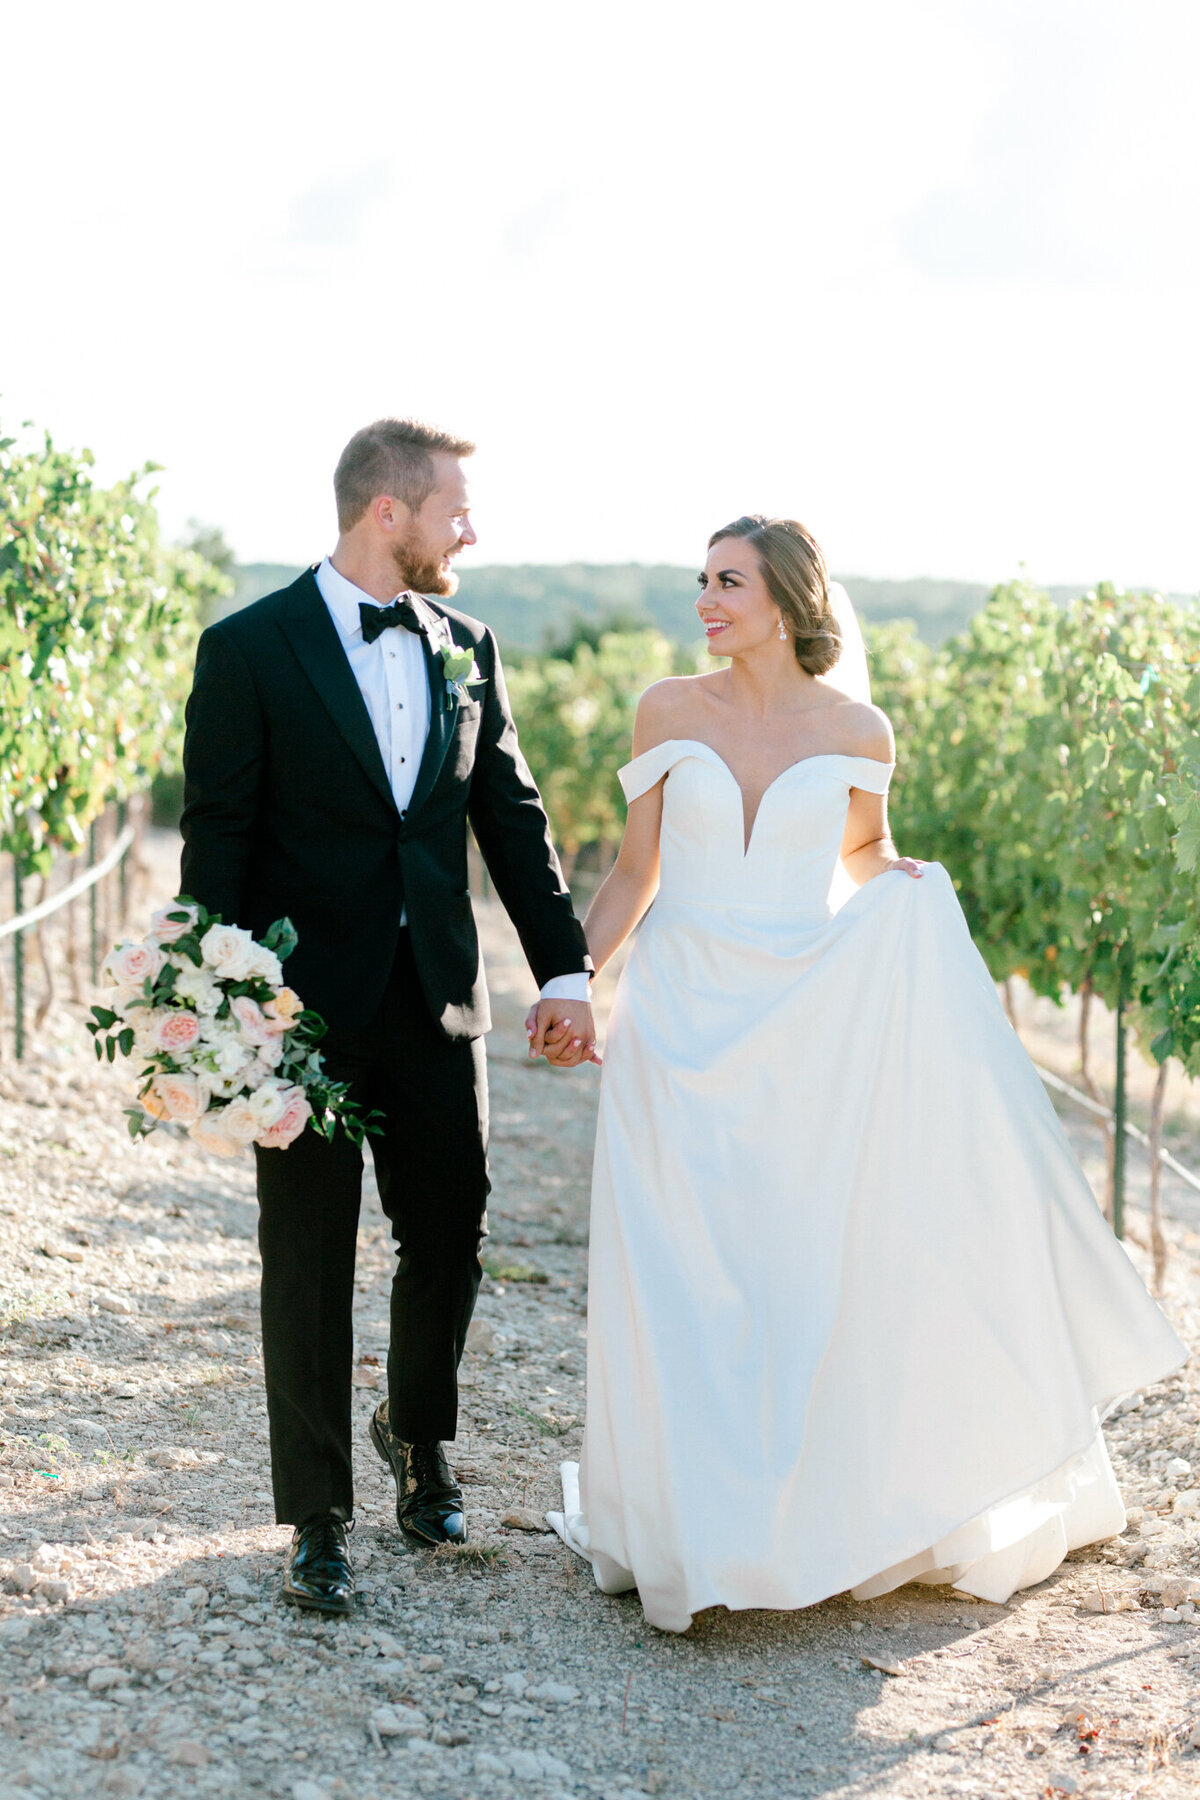 Lexi Broughton & Garrett Greer Wedding at Dove Ridge Vineyards | Sami Kathryn Photography | Dallas Wedding Photography-10